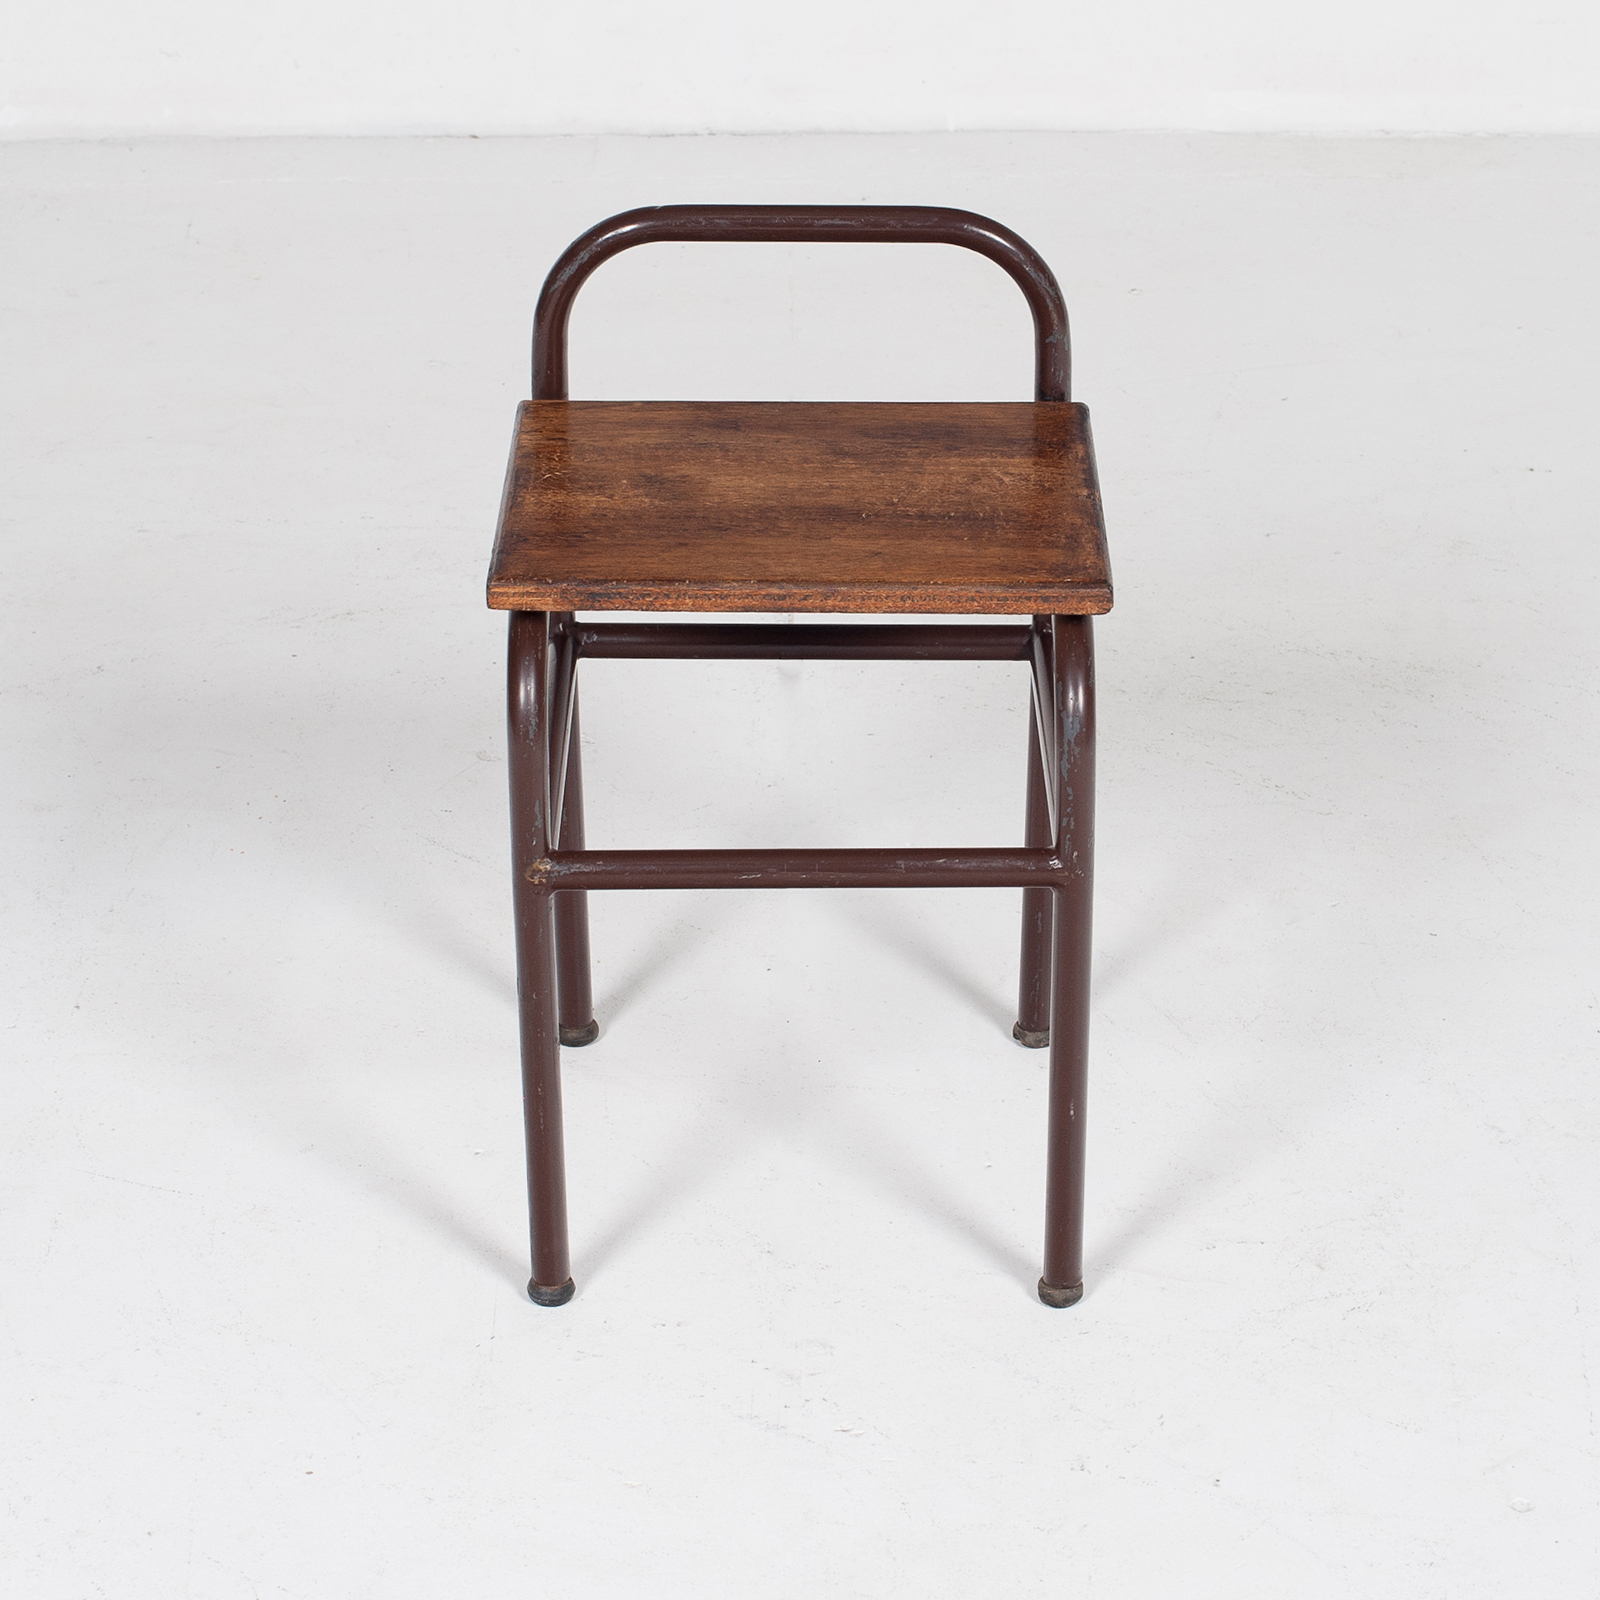 Industrial Stool With Timber Seat, Belgium Mt Stl 194 2602 Be Set 2 Of 2 79